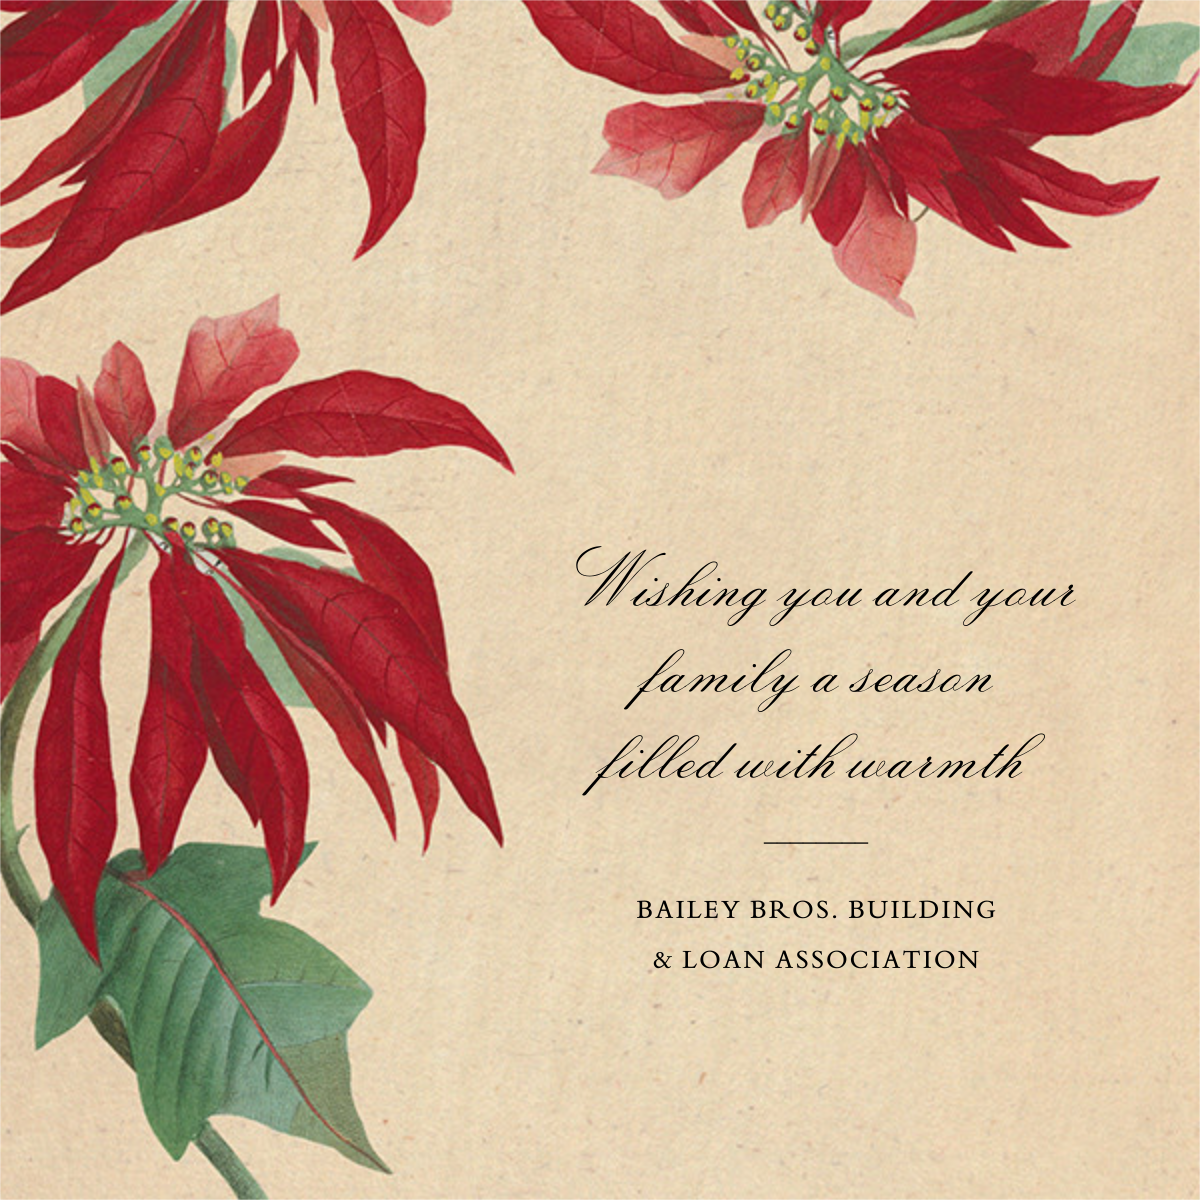 Euphorbia - John Derian - Business holiday cards